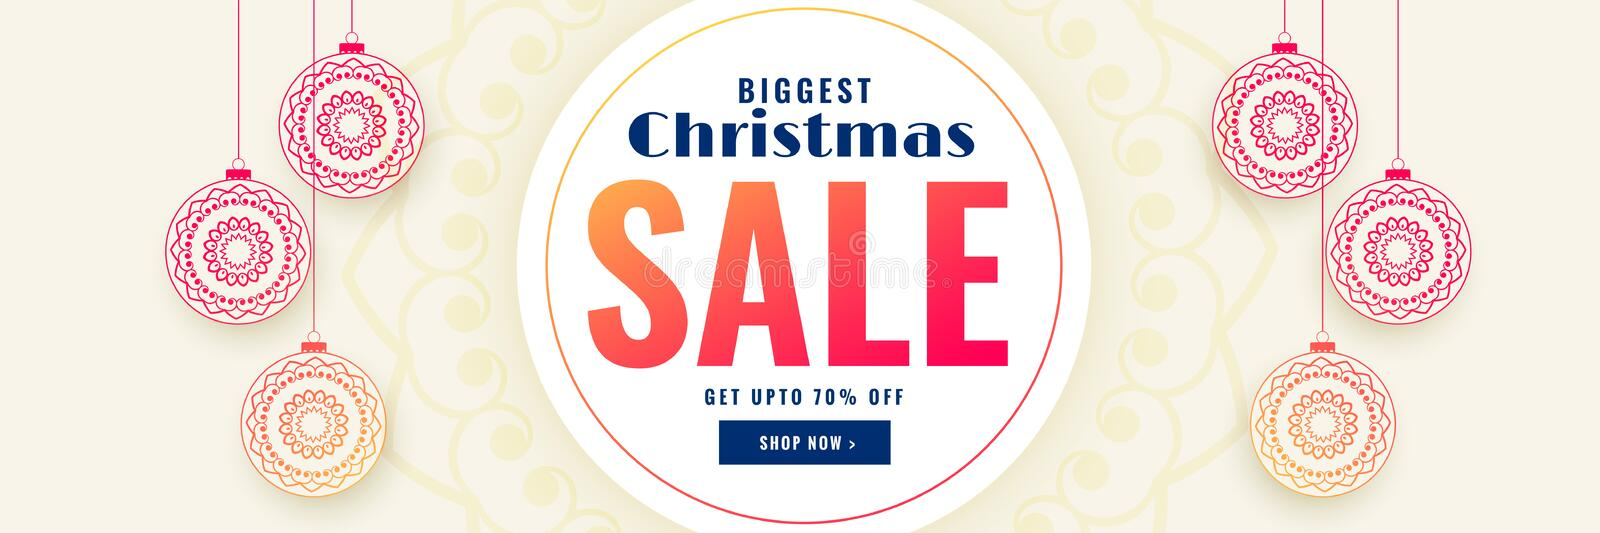 Christmas sale banner with decorative xmas balls. Vector royalty free illustration